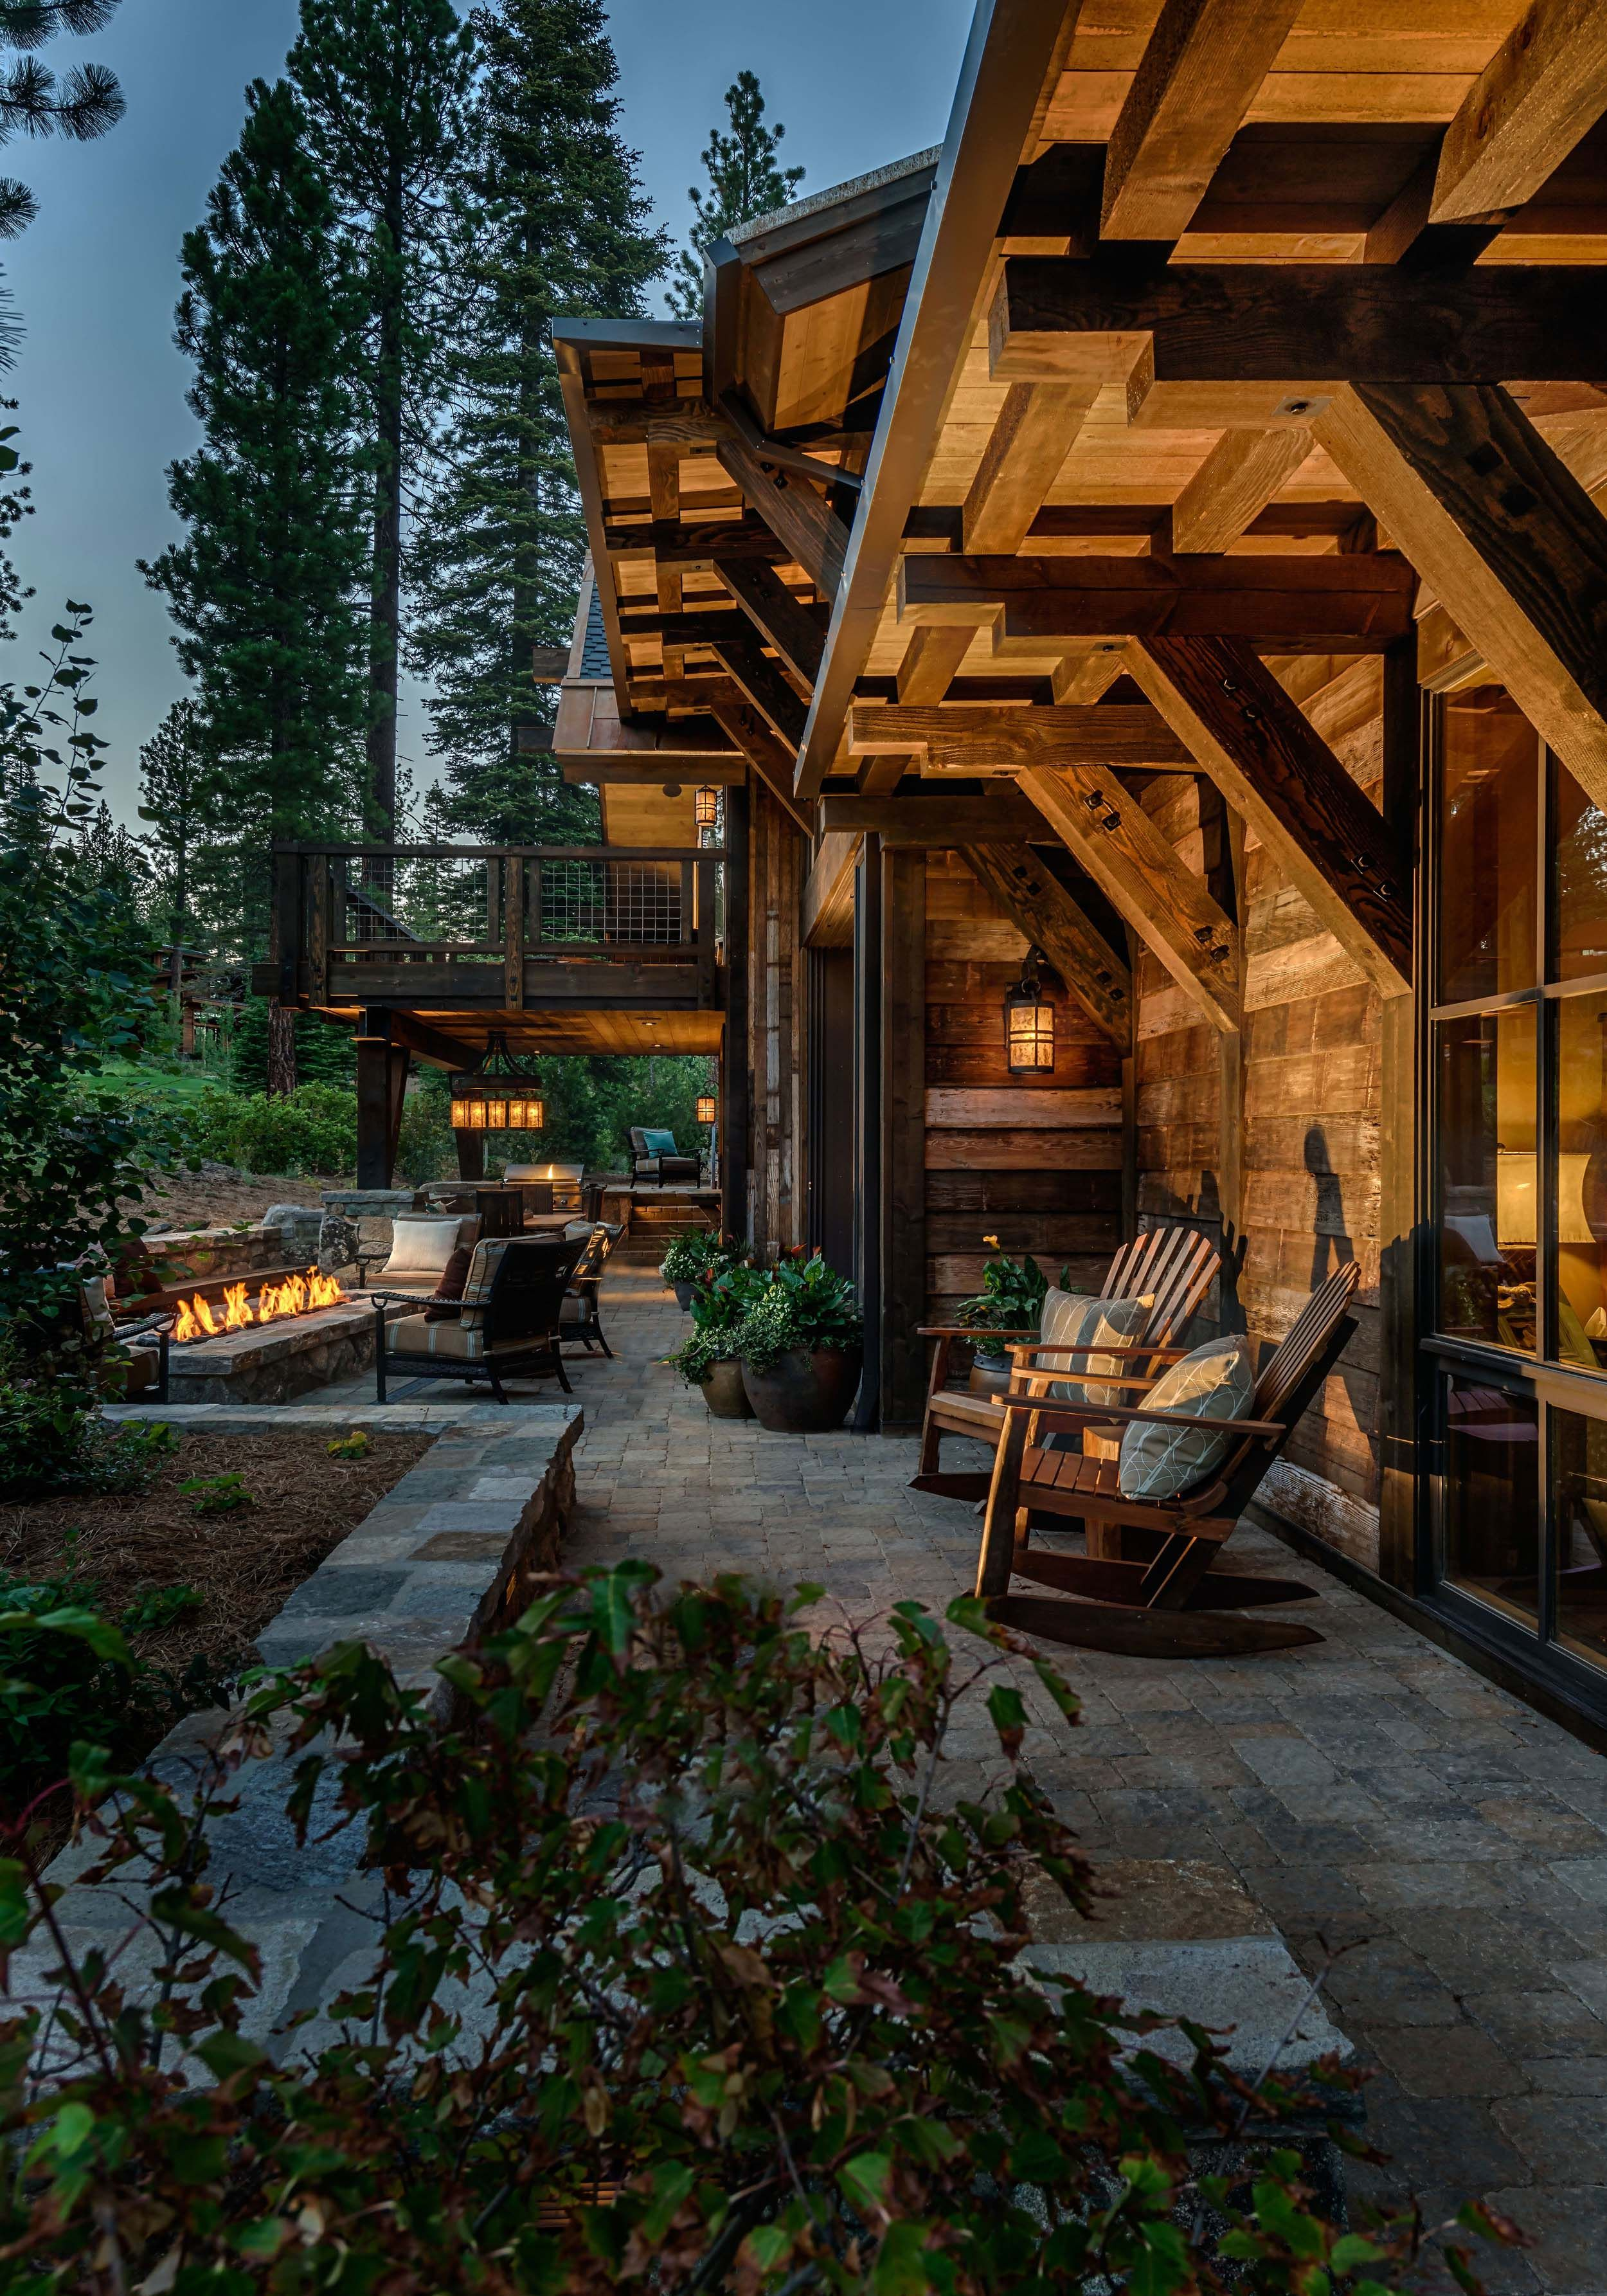 Rustic mountain cabin in Northern California infused with Texas